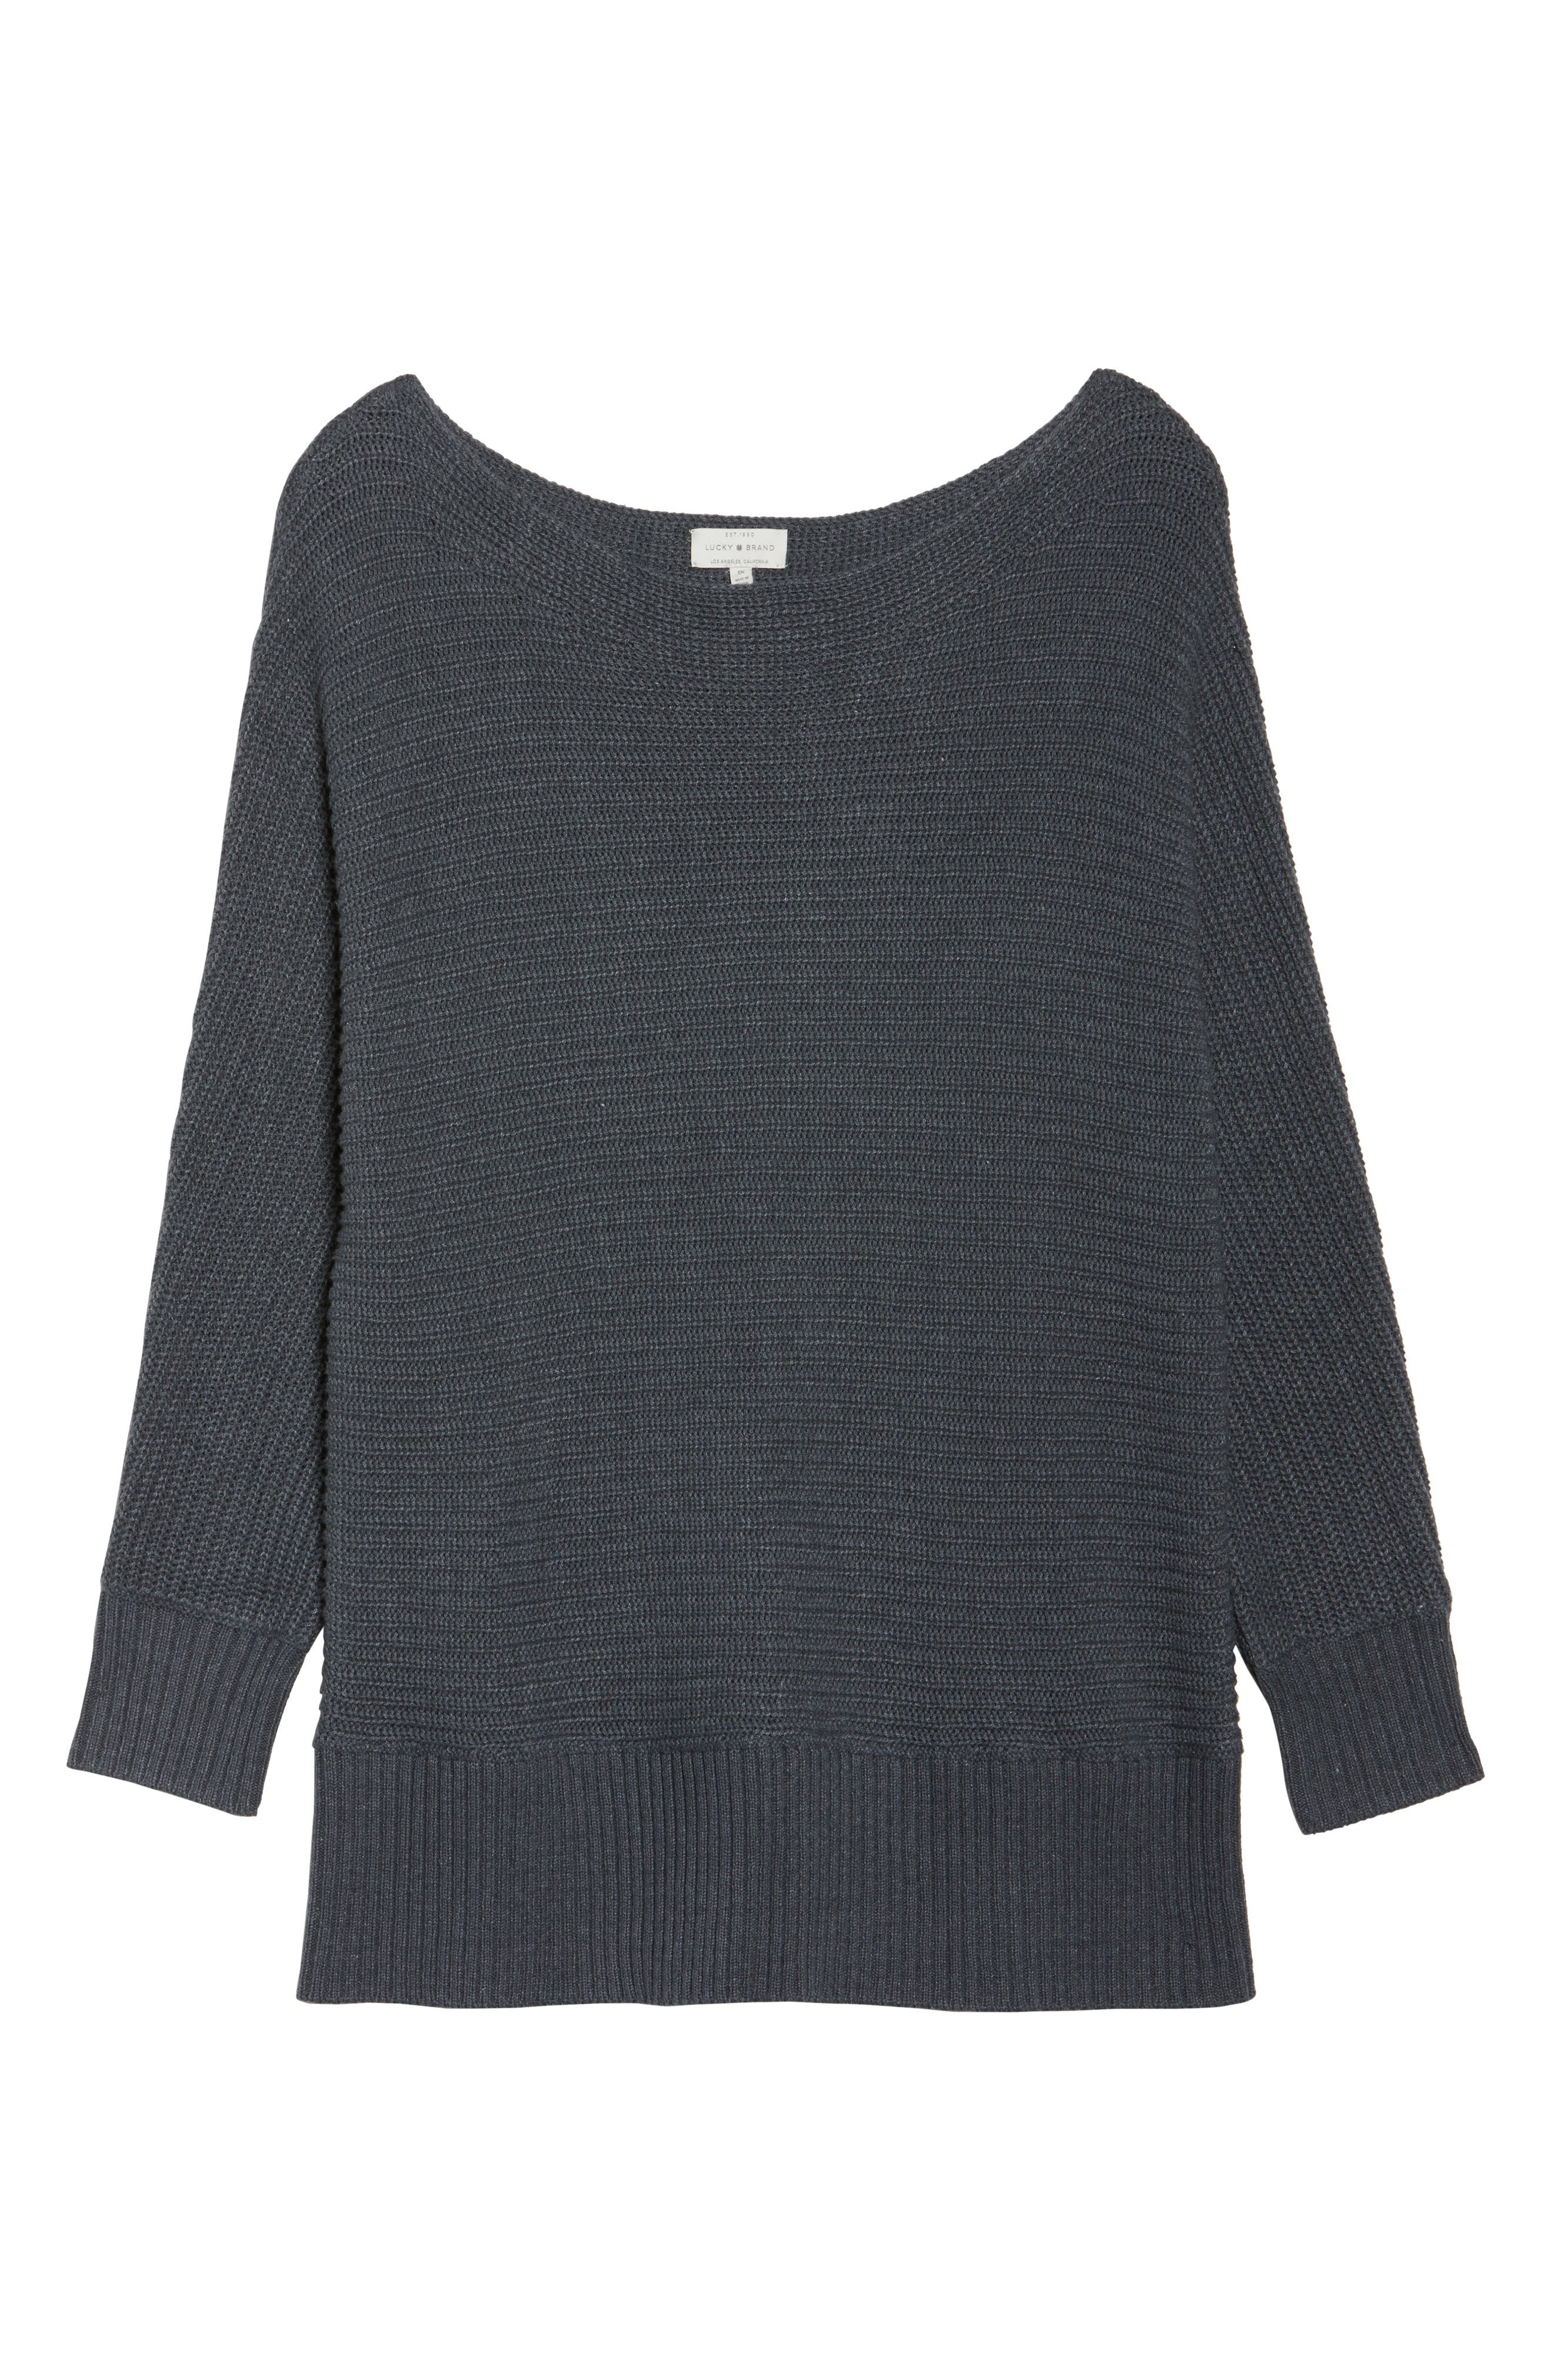 Off the Shoulder Sweater,                             Alternate thumbnail 6, color,                             060